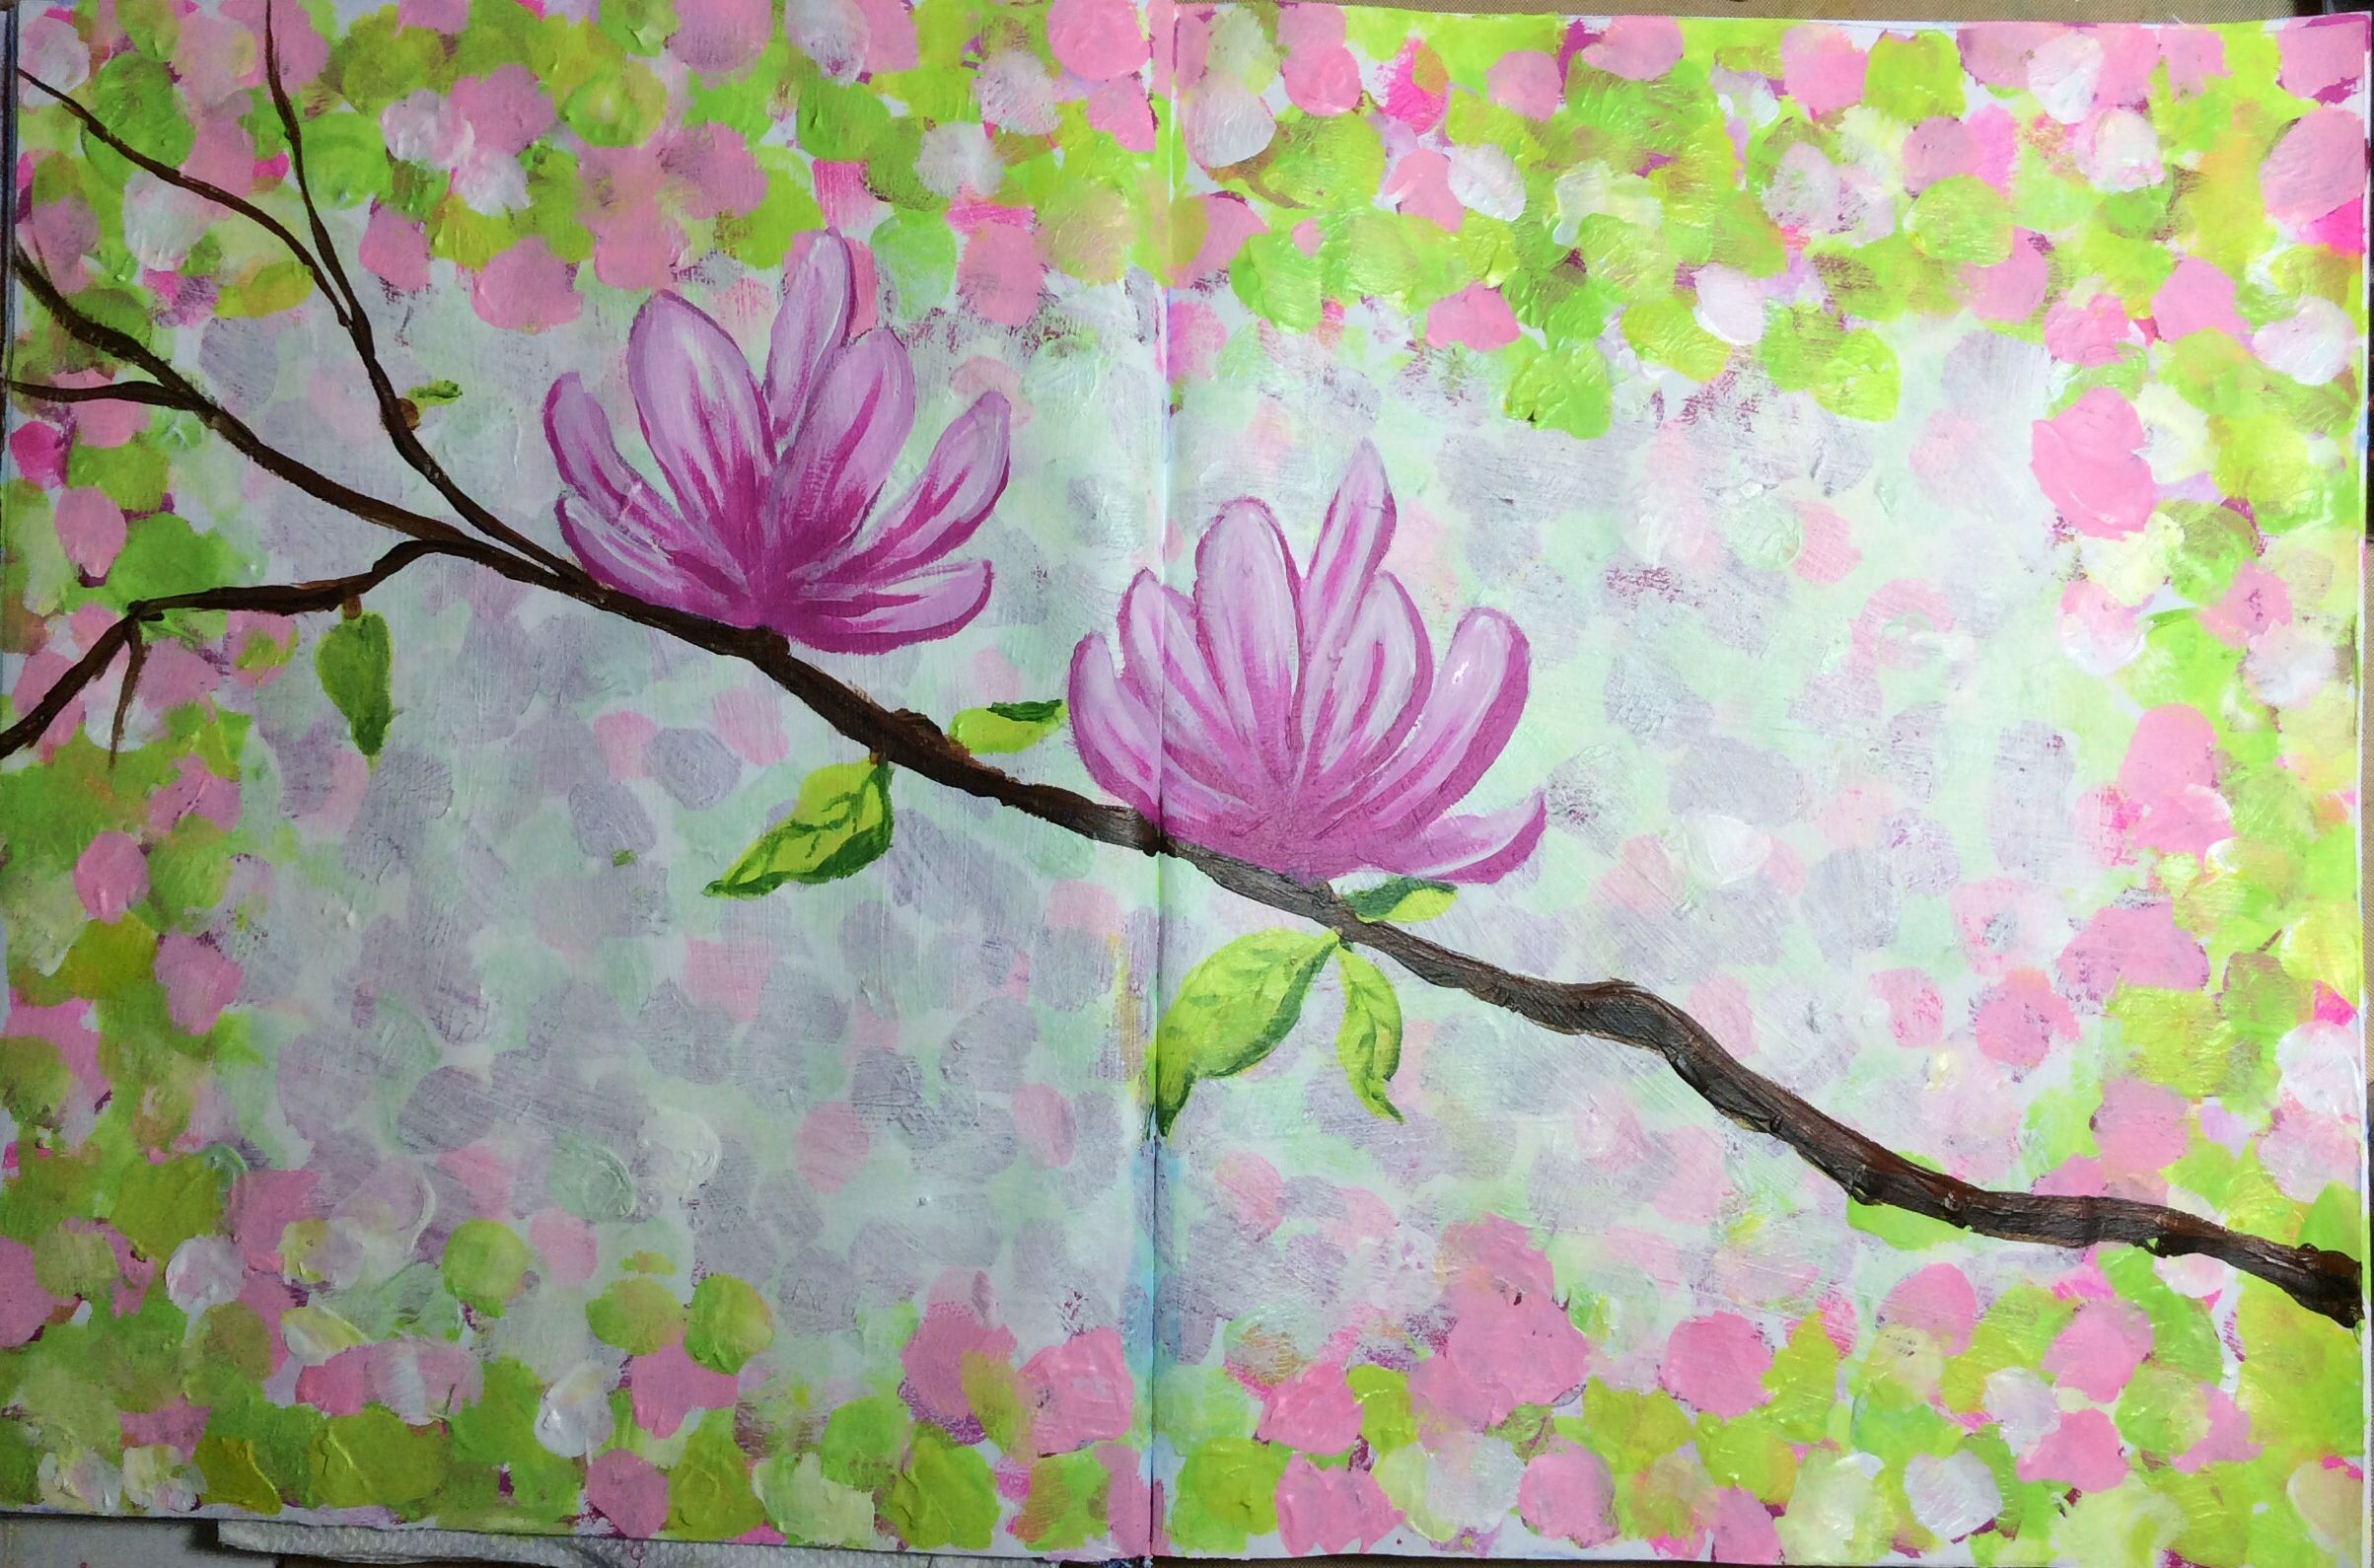 Magnolias in Spring. Tried it in my journal first. Considering canvas